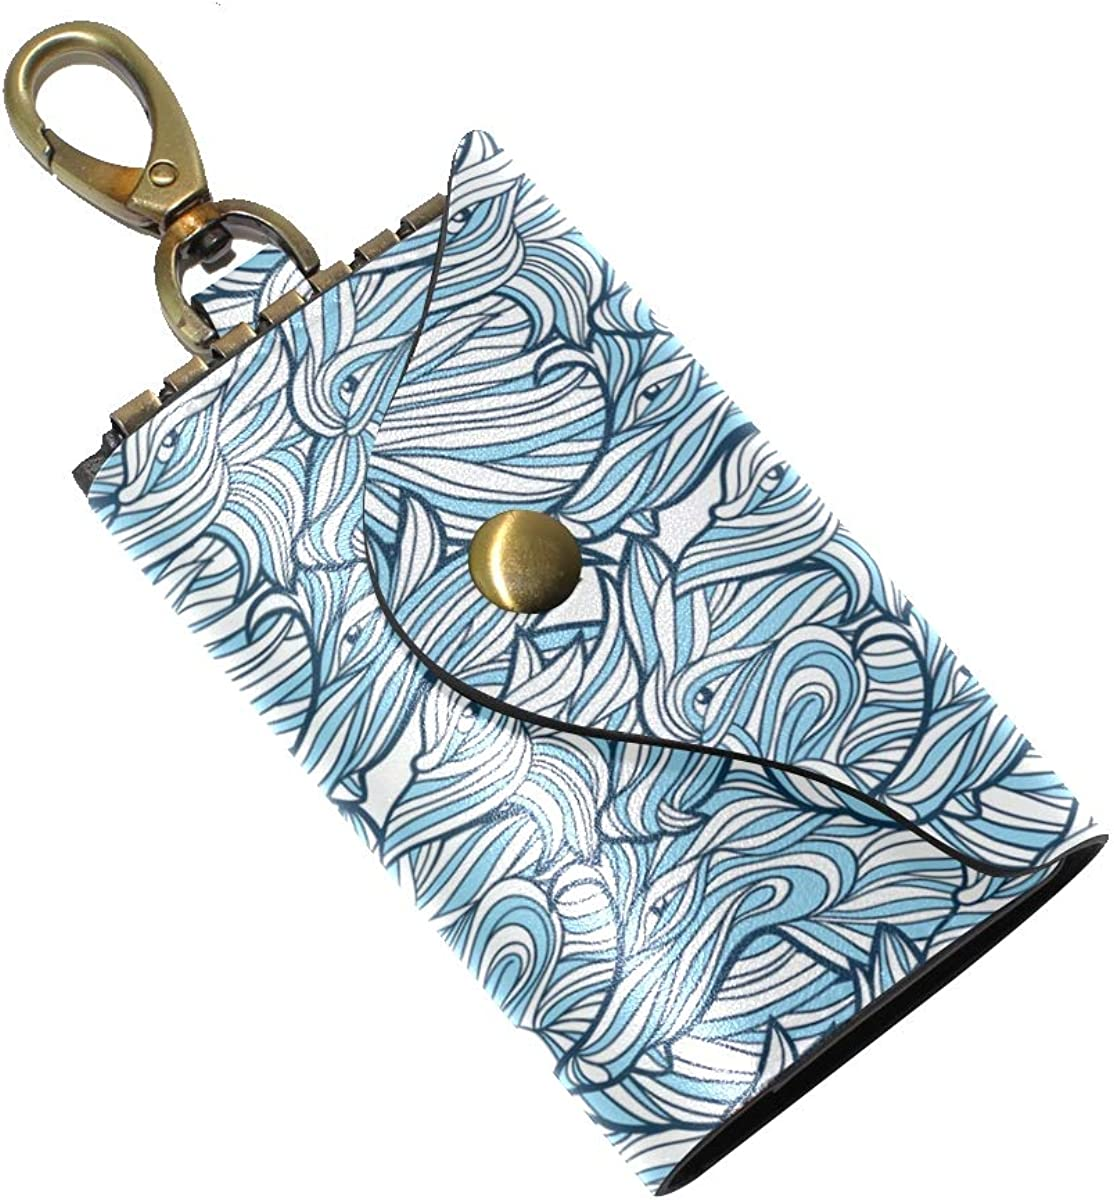 KEAKIA Wolves Abstract Pattern Leather Key Case Wallets Tri-fold Key Holder Keychains with 6 Hooks 2 Slot Snap Closure for Men Women